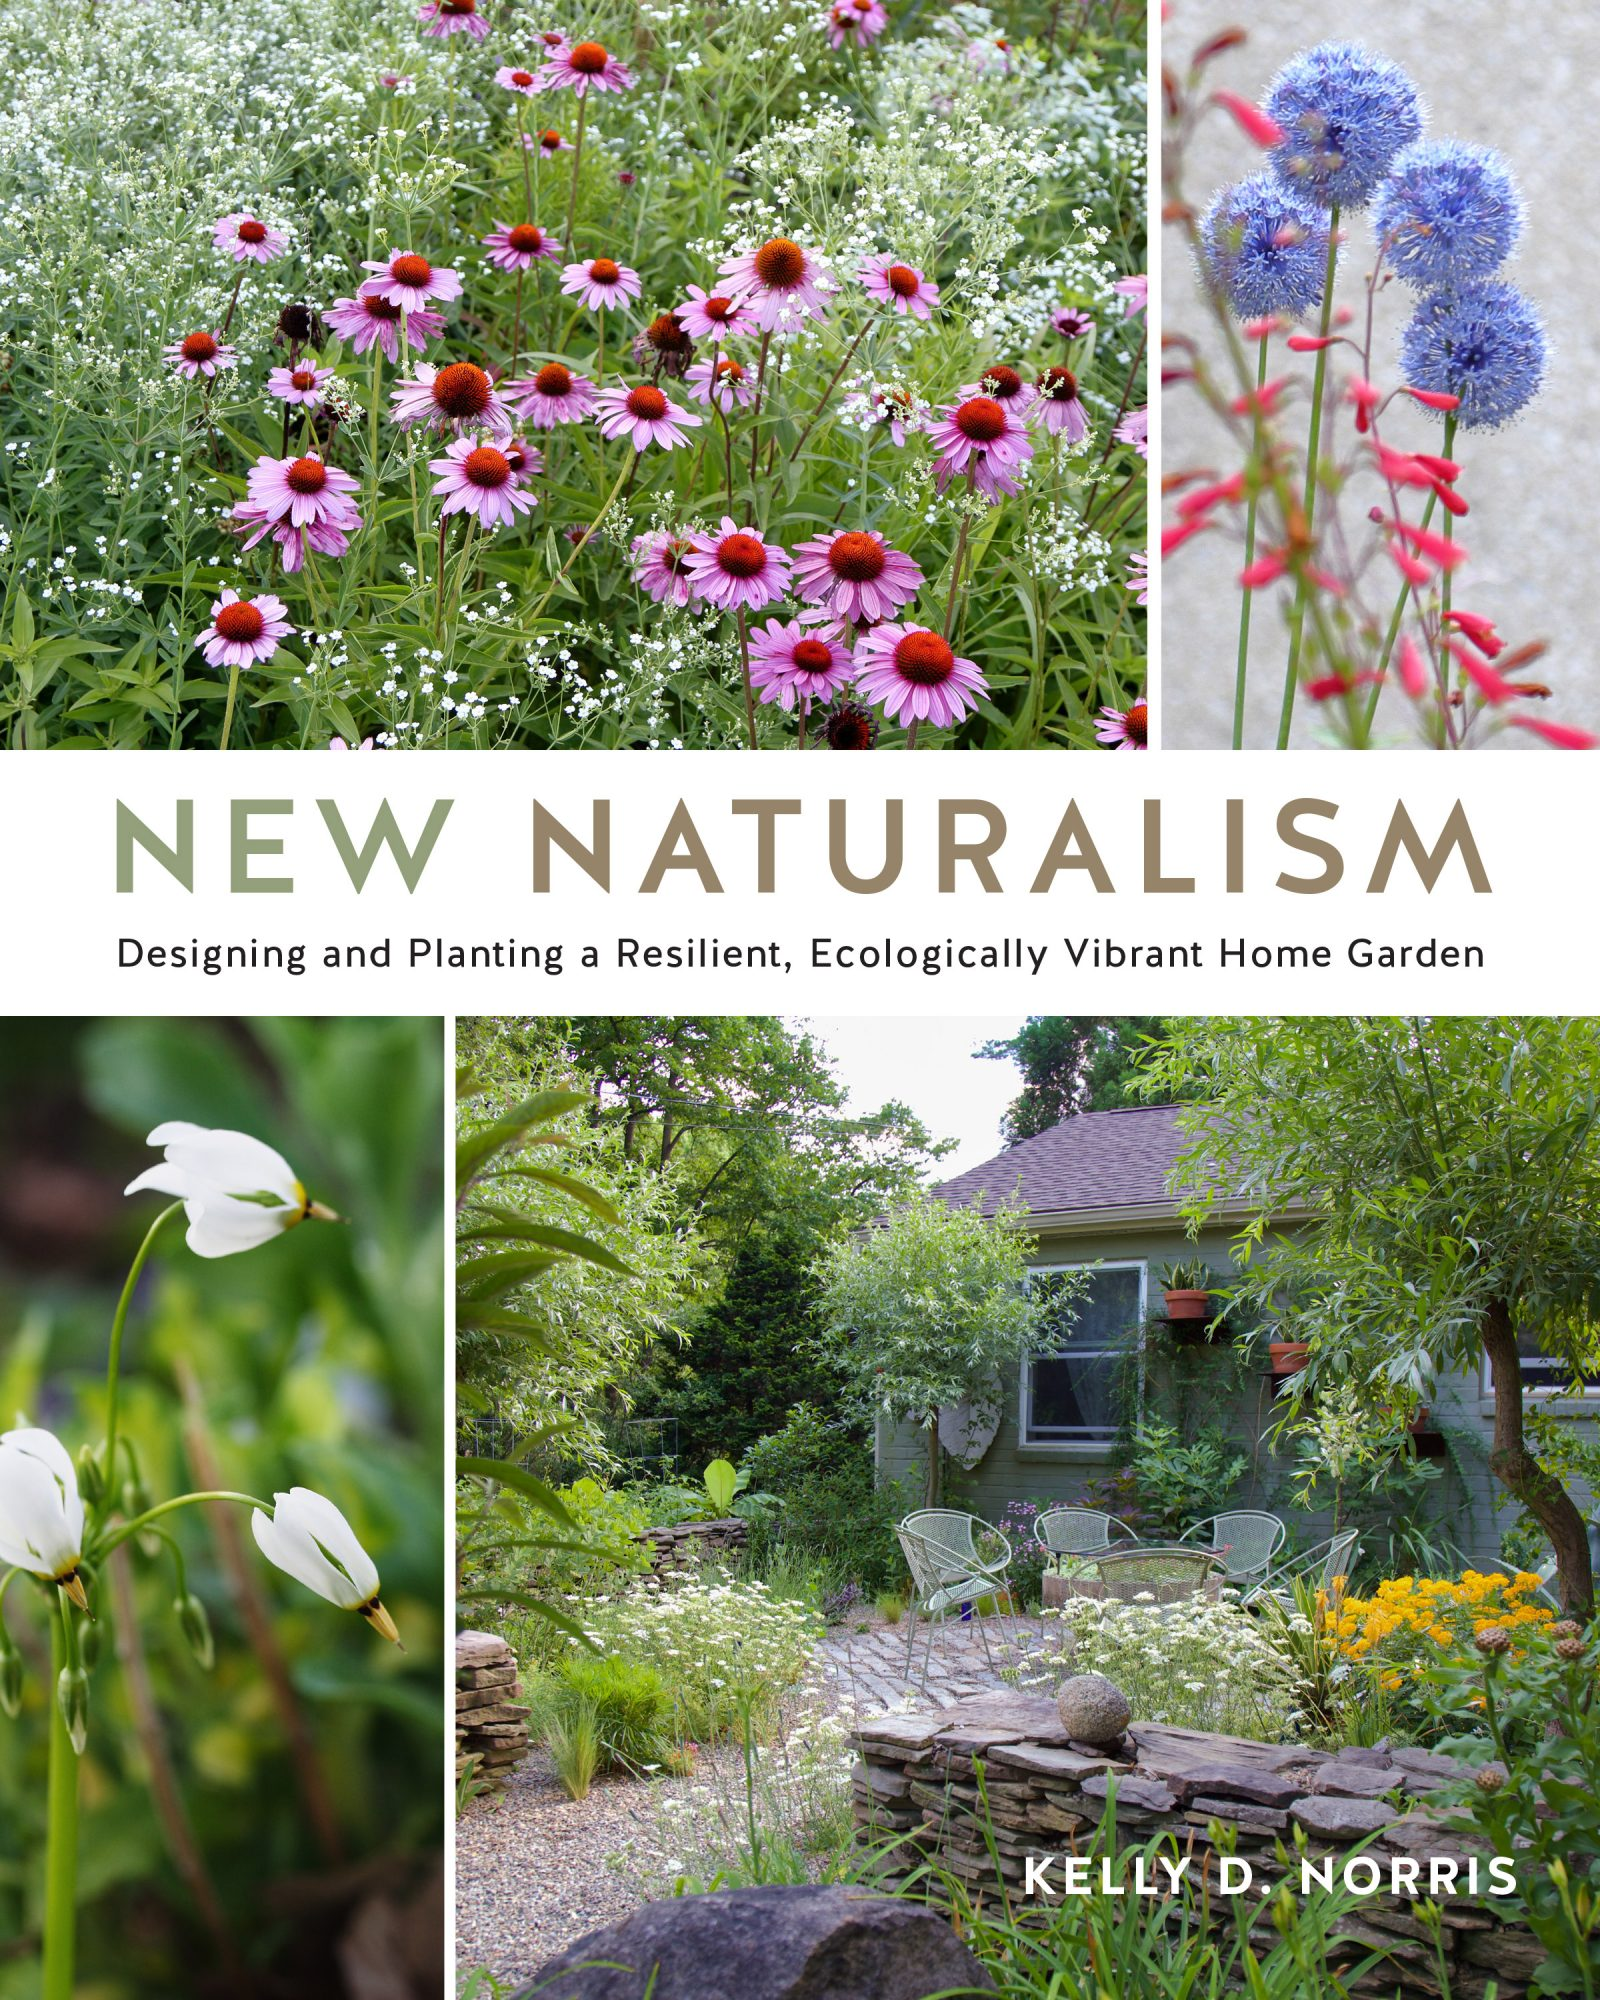 The New Naturalism book